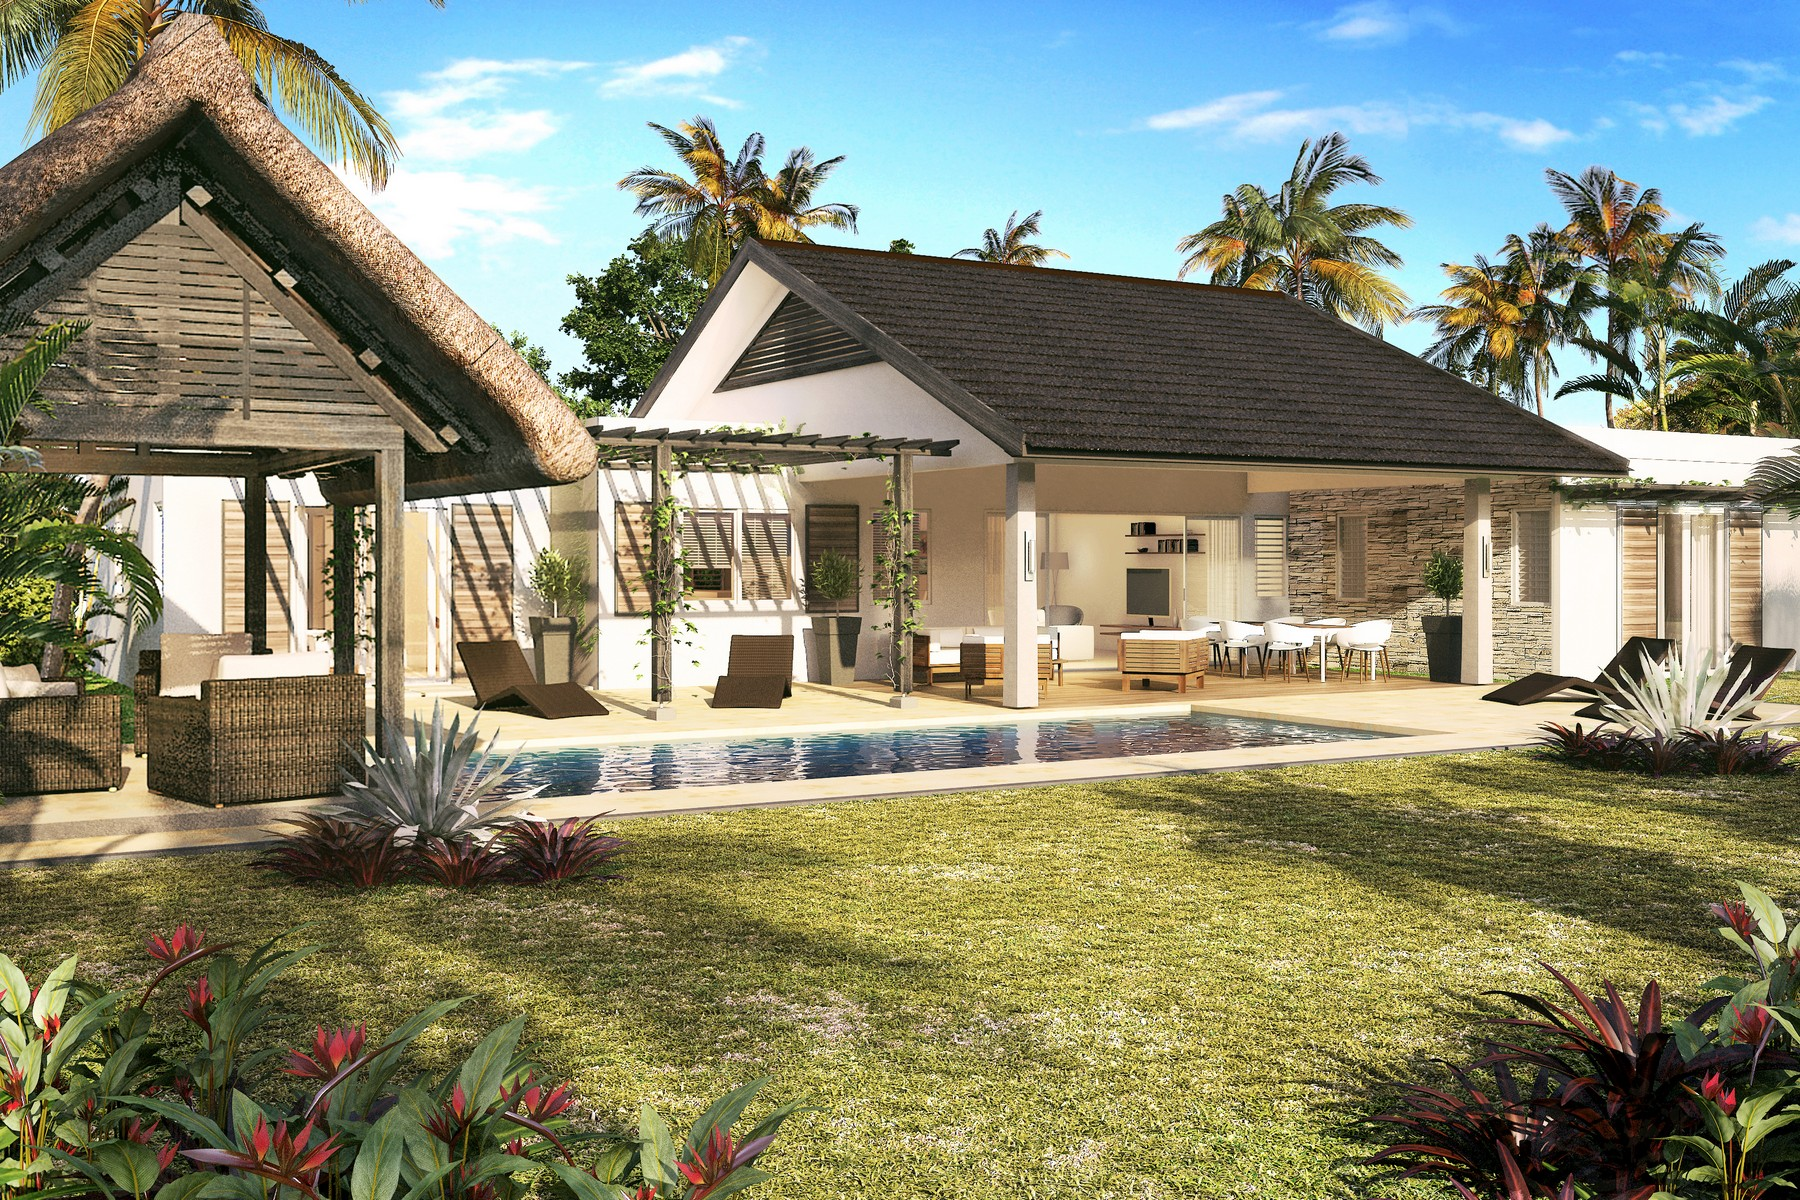 Other Residential for Sale at Clos Du Littoral II Grand Baie, Riviere Du Rempart, Mauritius